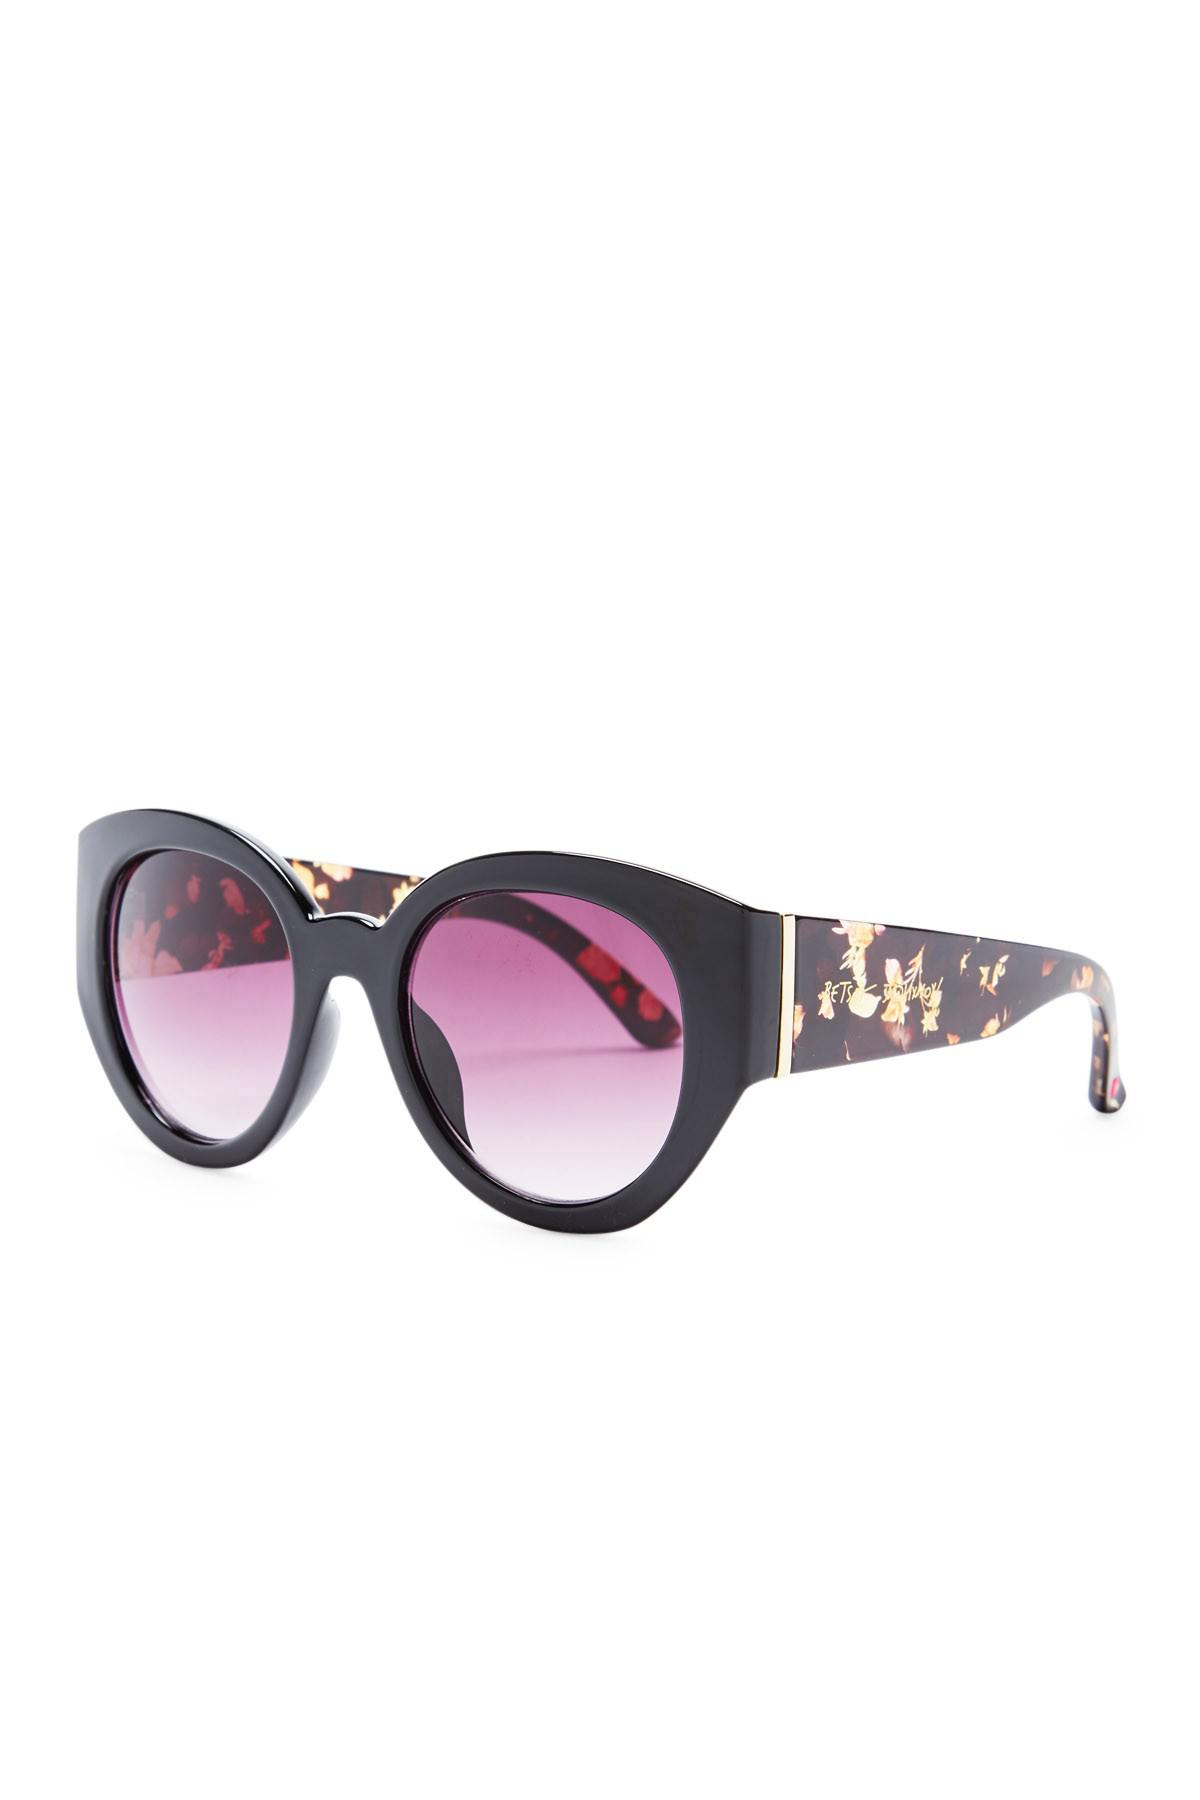 8e7833780f19e Gallery. Previously sold at  Nordstrom Rack · Women s Cat Eye Sunglasses ...